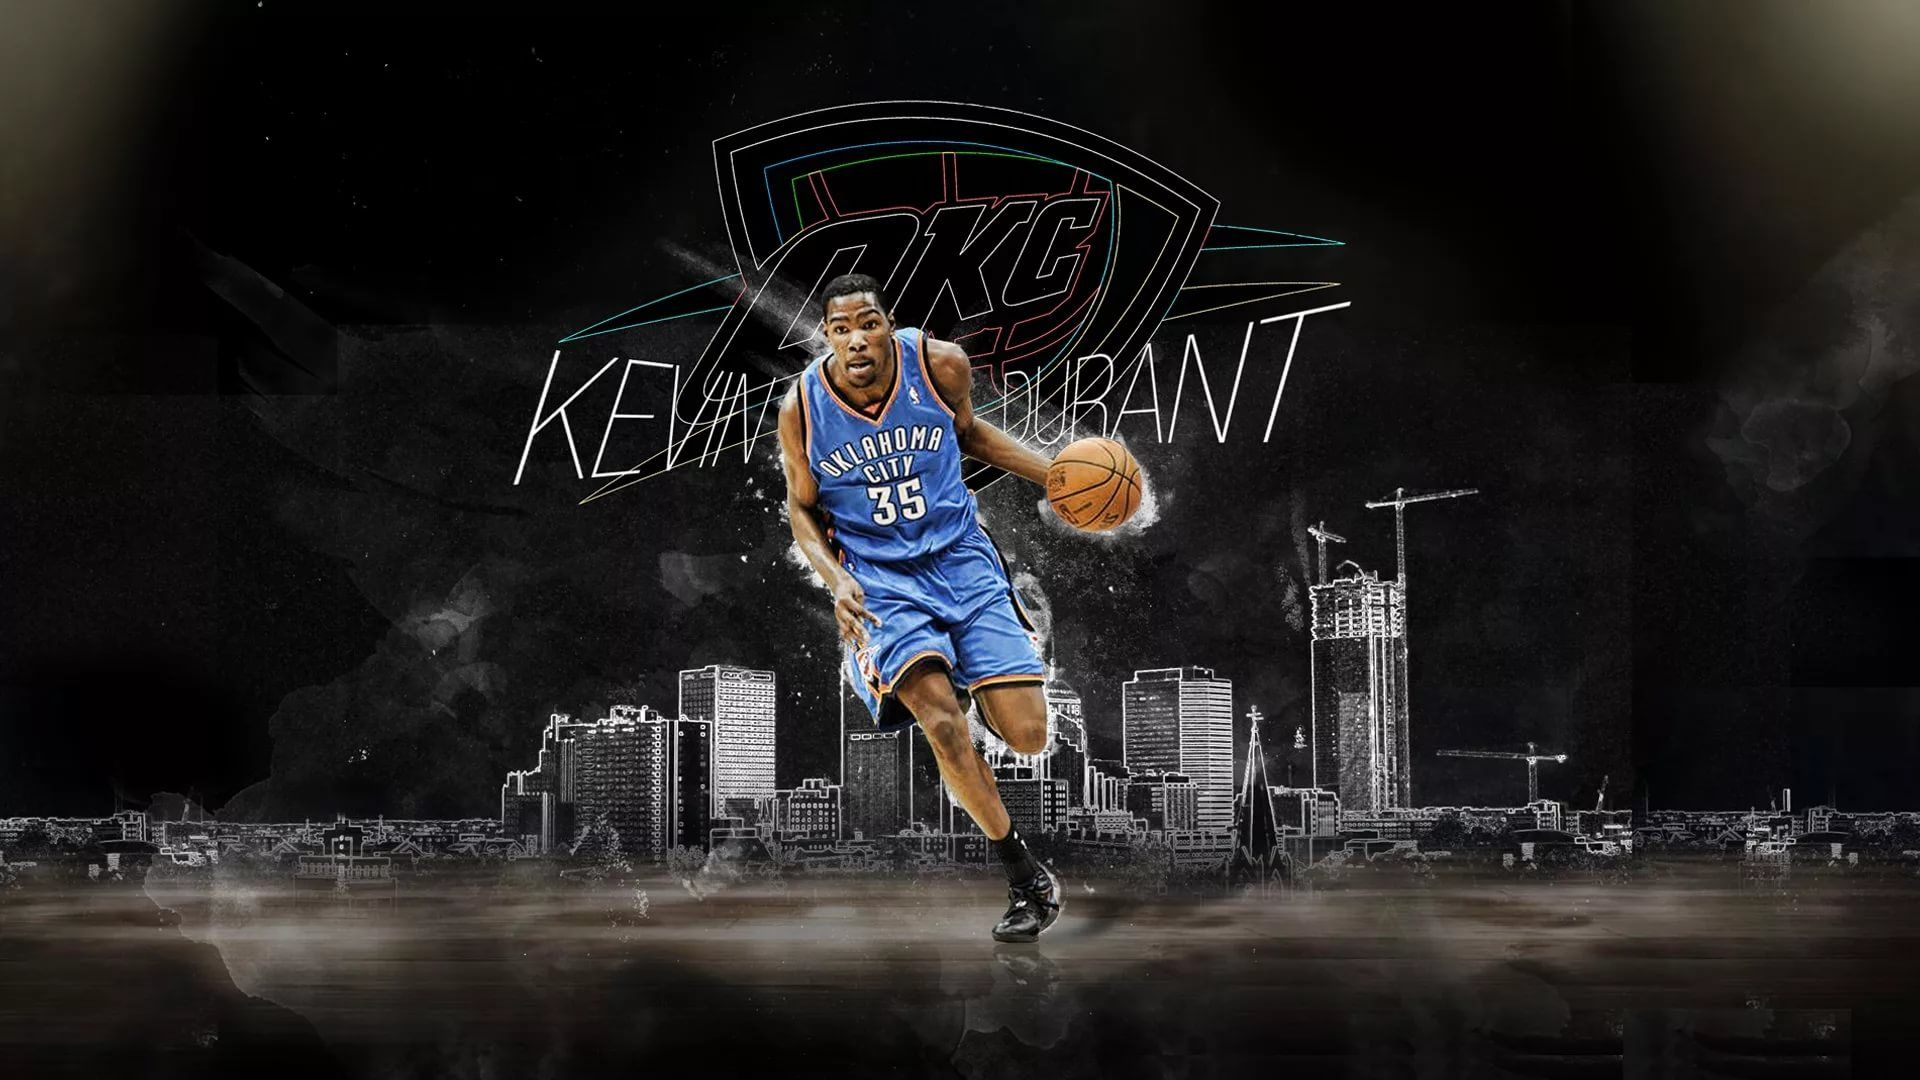 Kevin Durant Free Download Wallpaper